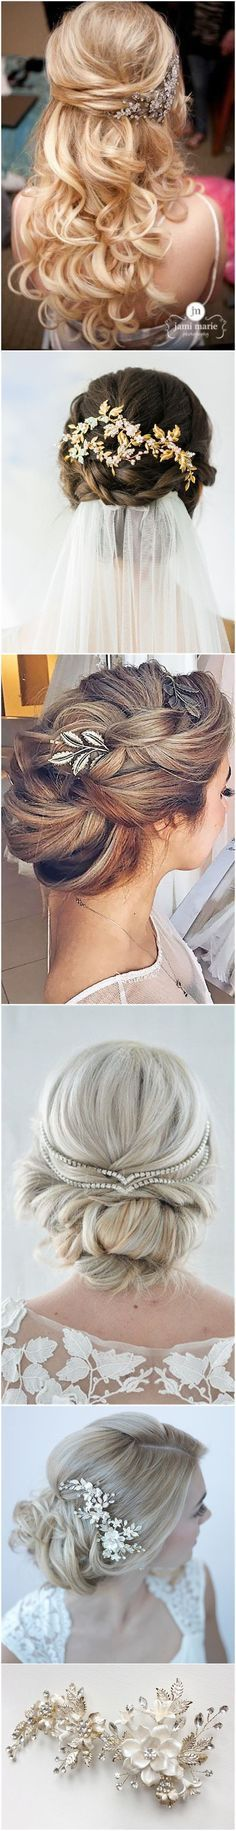 Wedding Hairstyles » Hair Comes the Bride – 20 Bridal Hair Accessories Get Style Advice for Any Budget